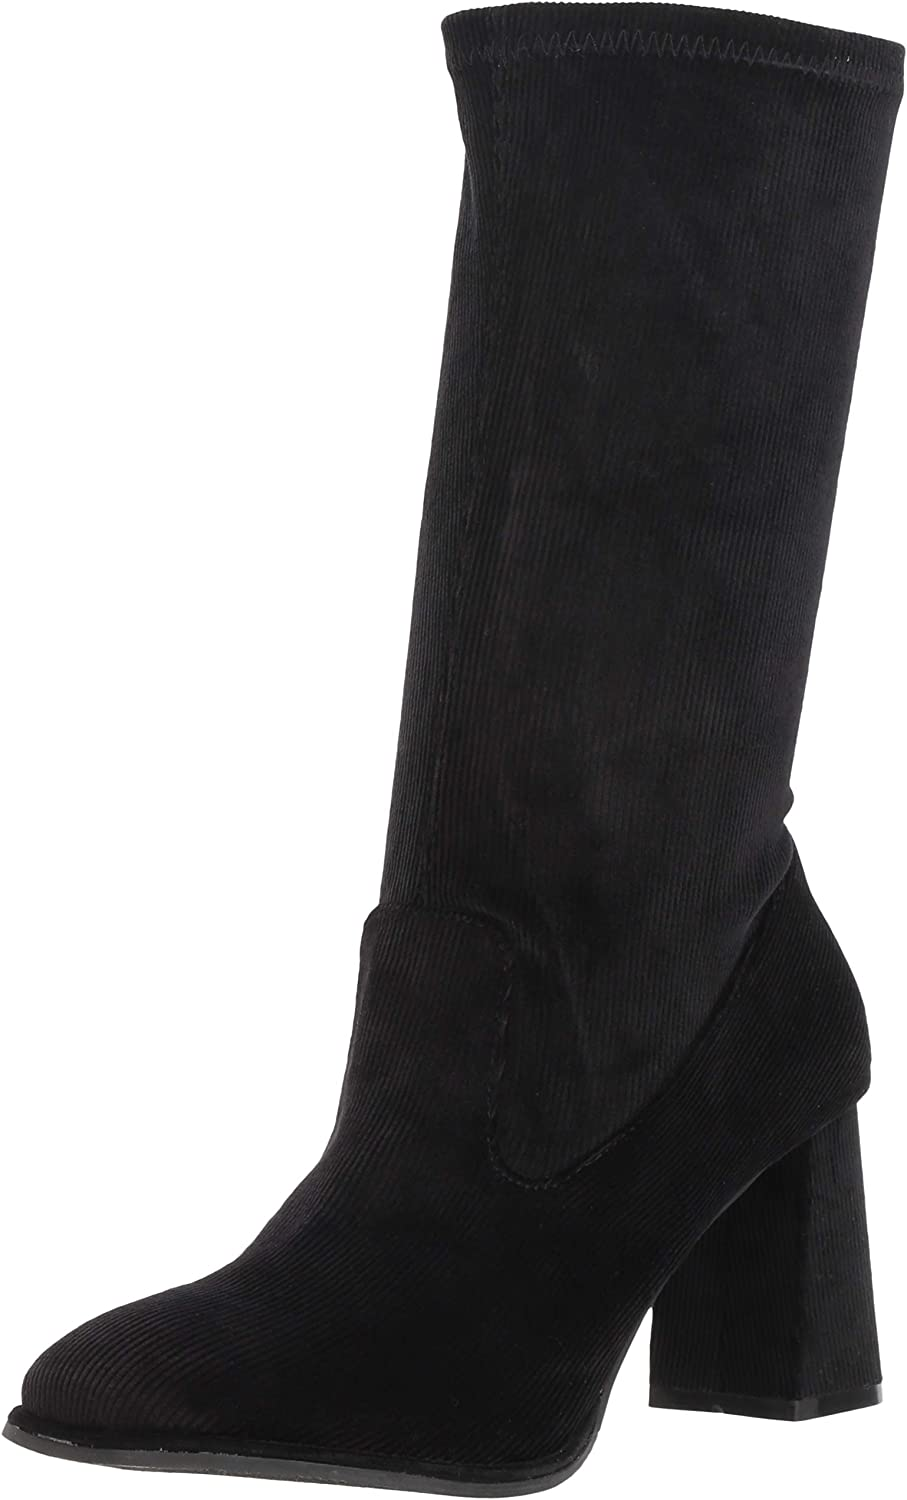 Sbicca Women's Hanlon Fashion Boot